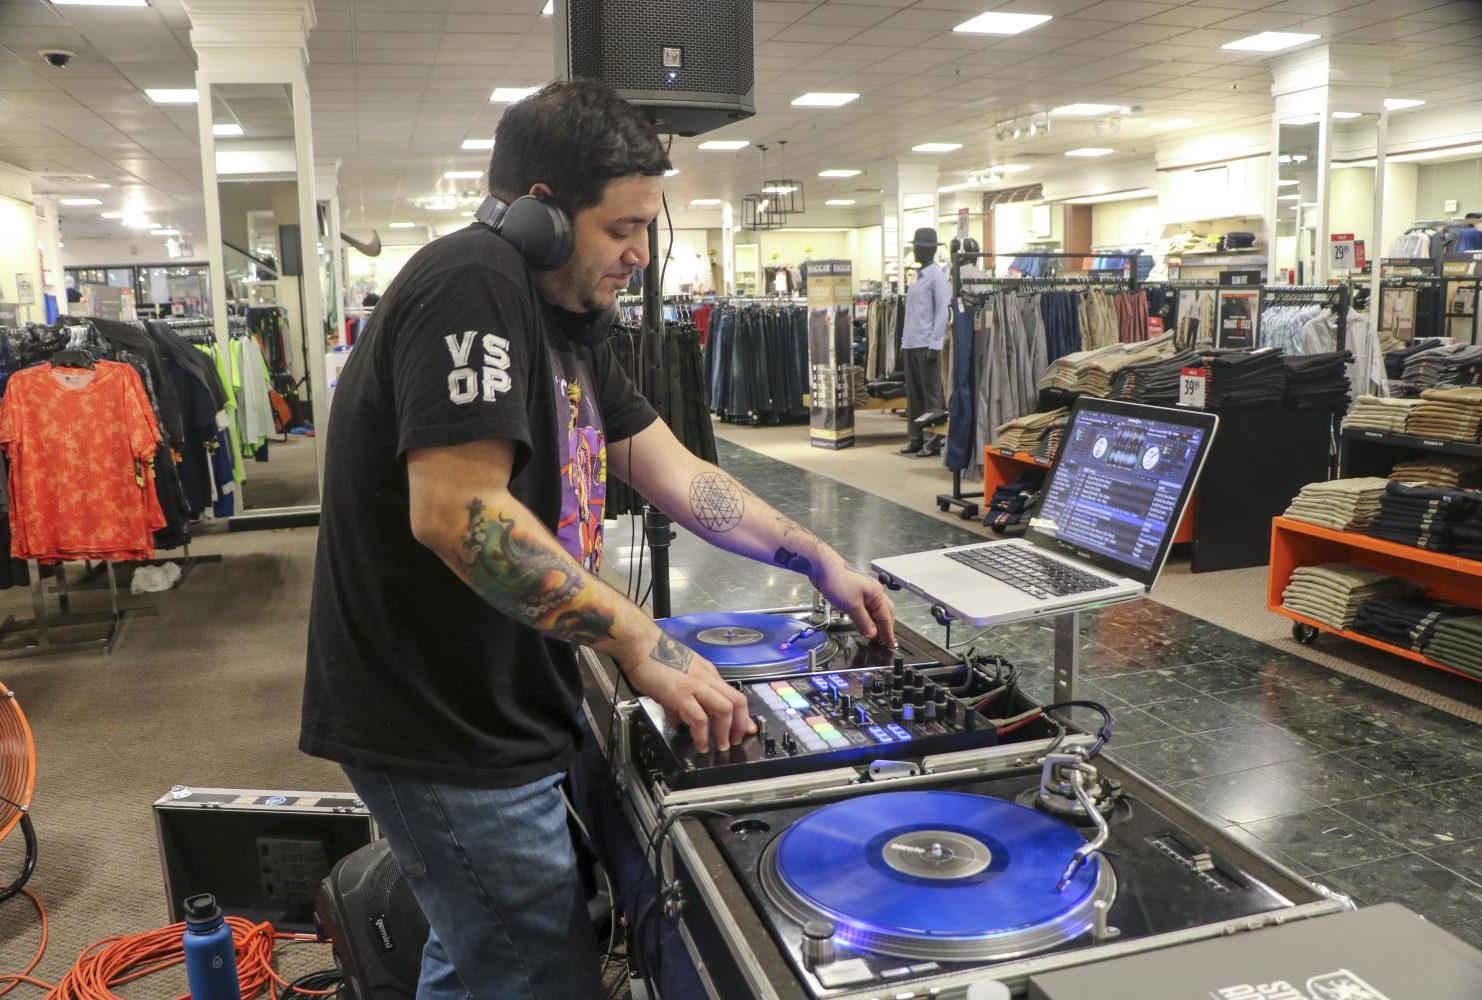 American River College music student Ricardo Preciado, or DJ Riktor, mixed music from his set-up in the JCPenney at Arden Fair Mall during the Suit Up Event on March 10, 2019. (Photo by Irene Jacobs)